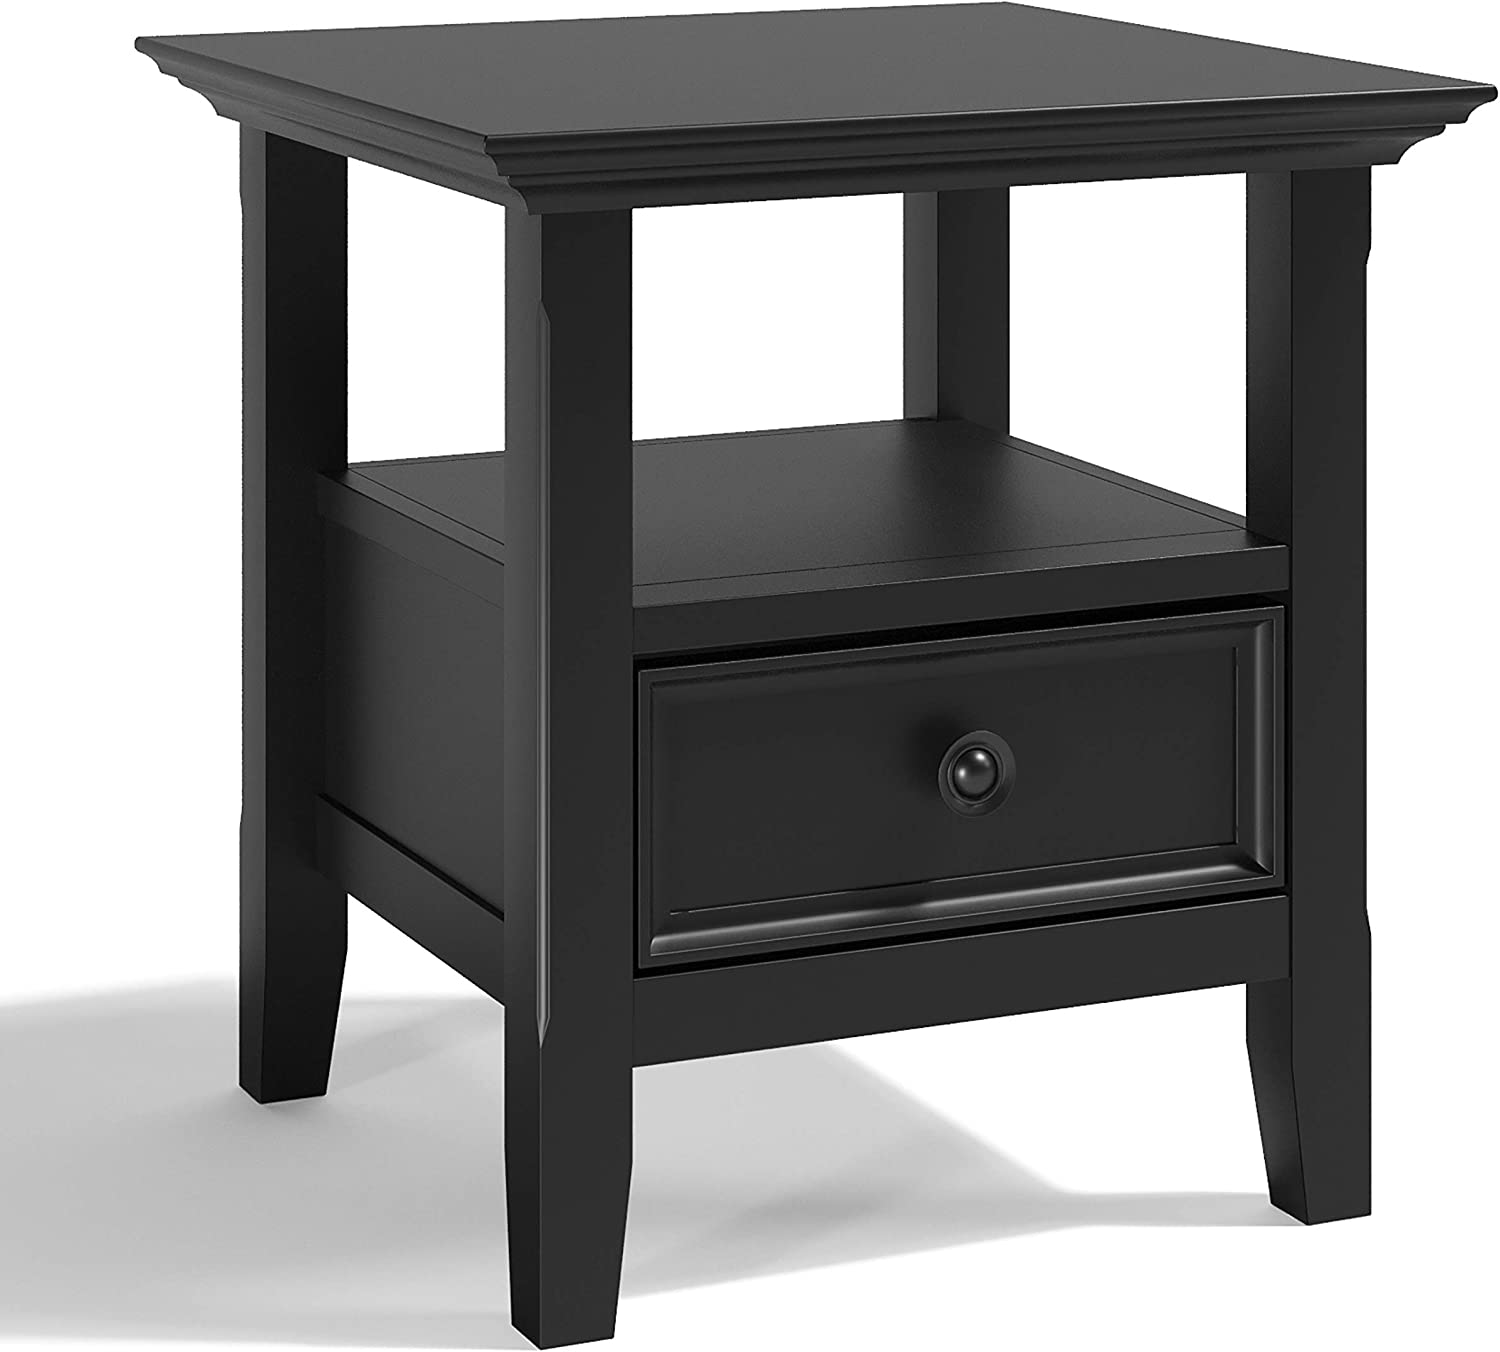 SIMPLIHOME Amherst SOLID WOOD 19 inch wide Square Transitional End Side Table in Black with Storage, 1 Drawer and 1 Shelf, for the Living Room and Bedroom